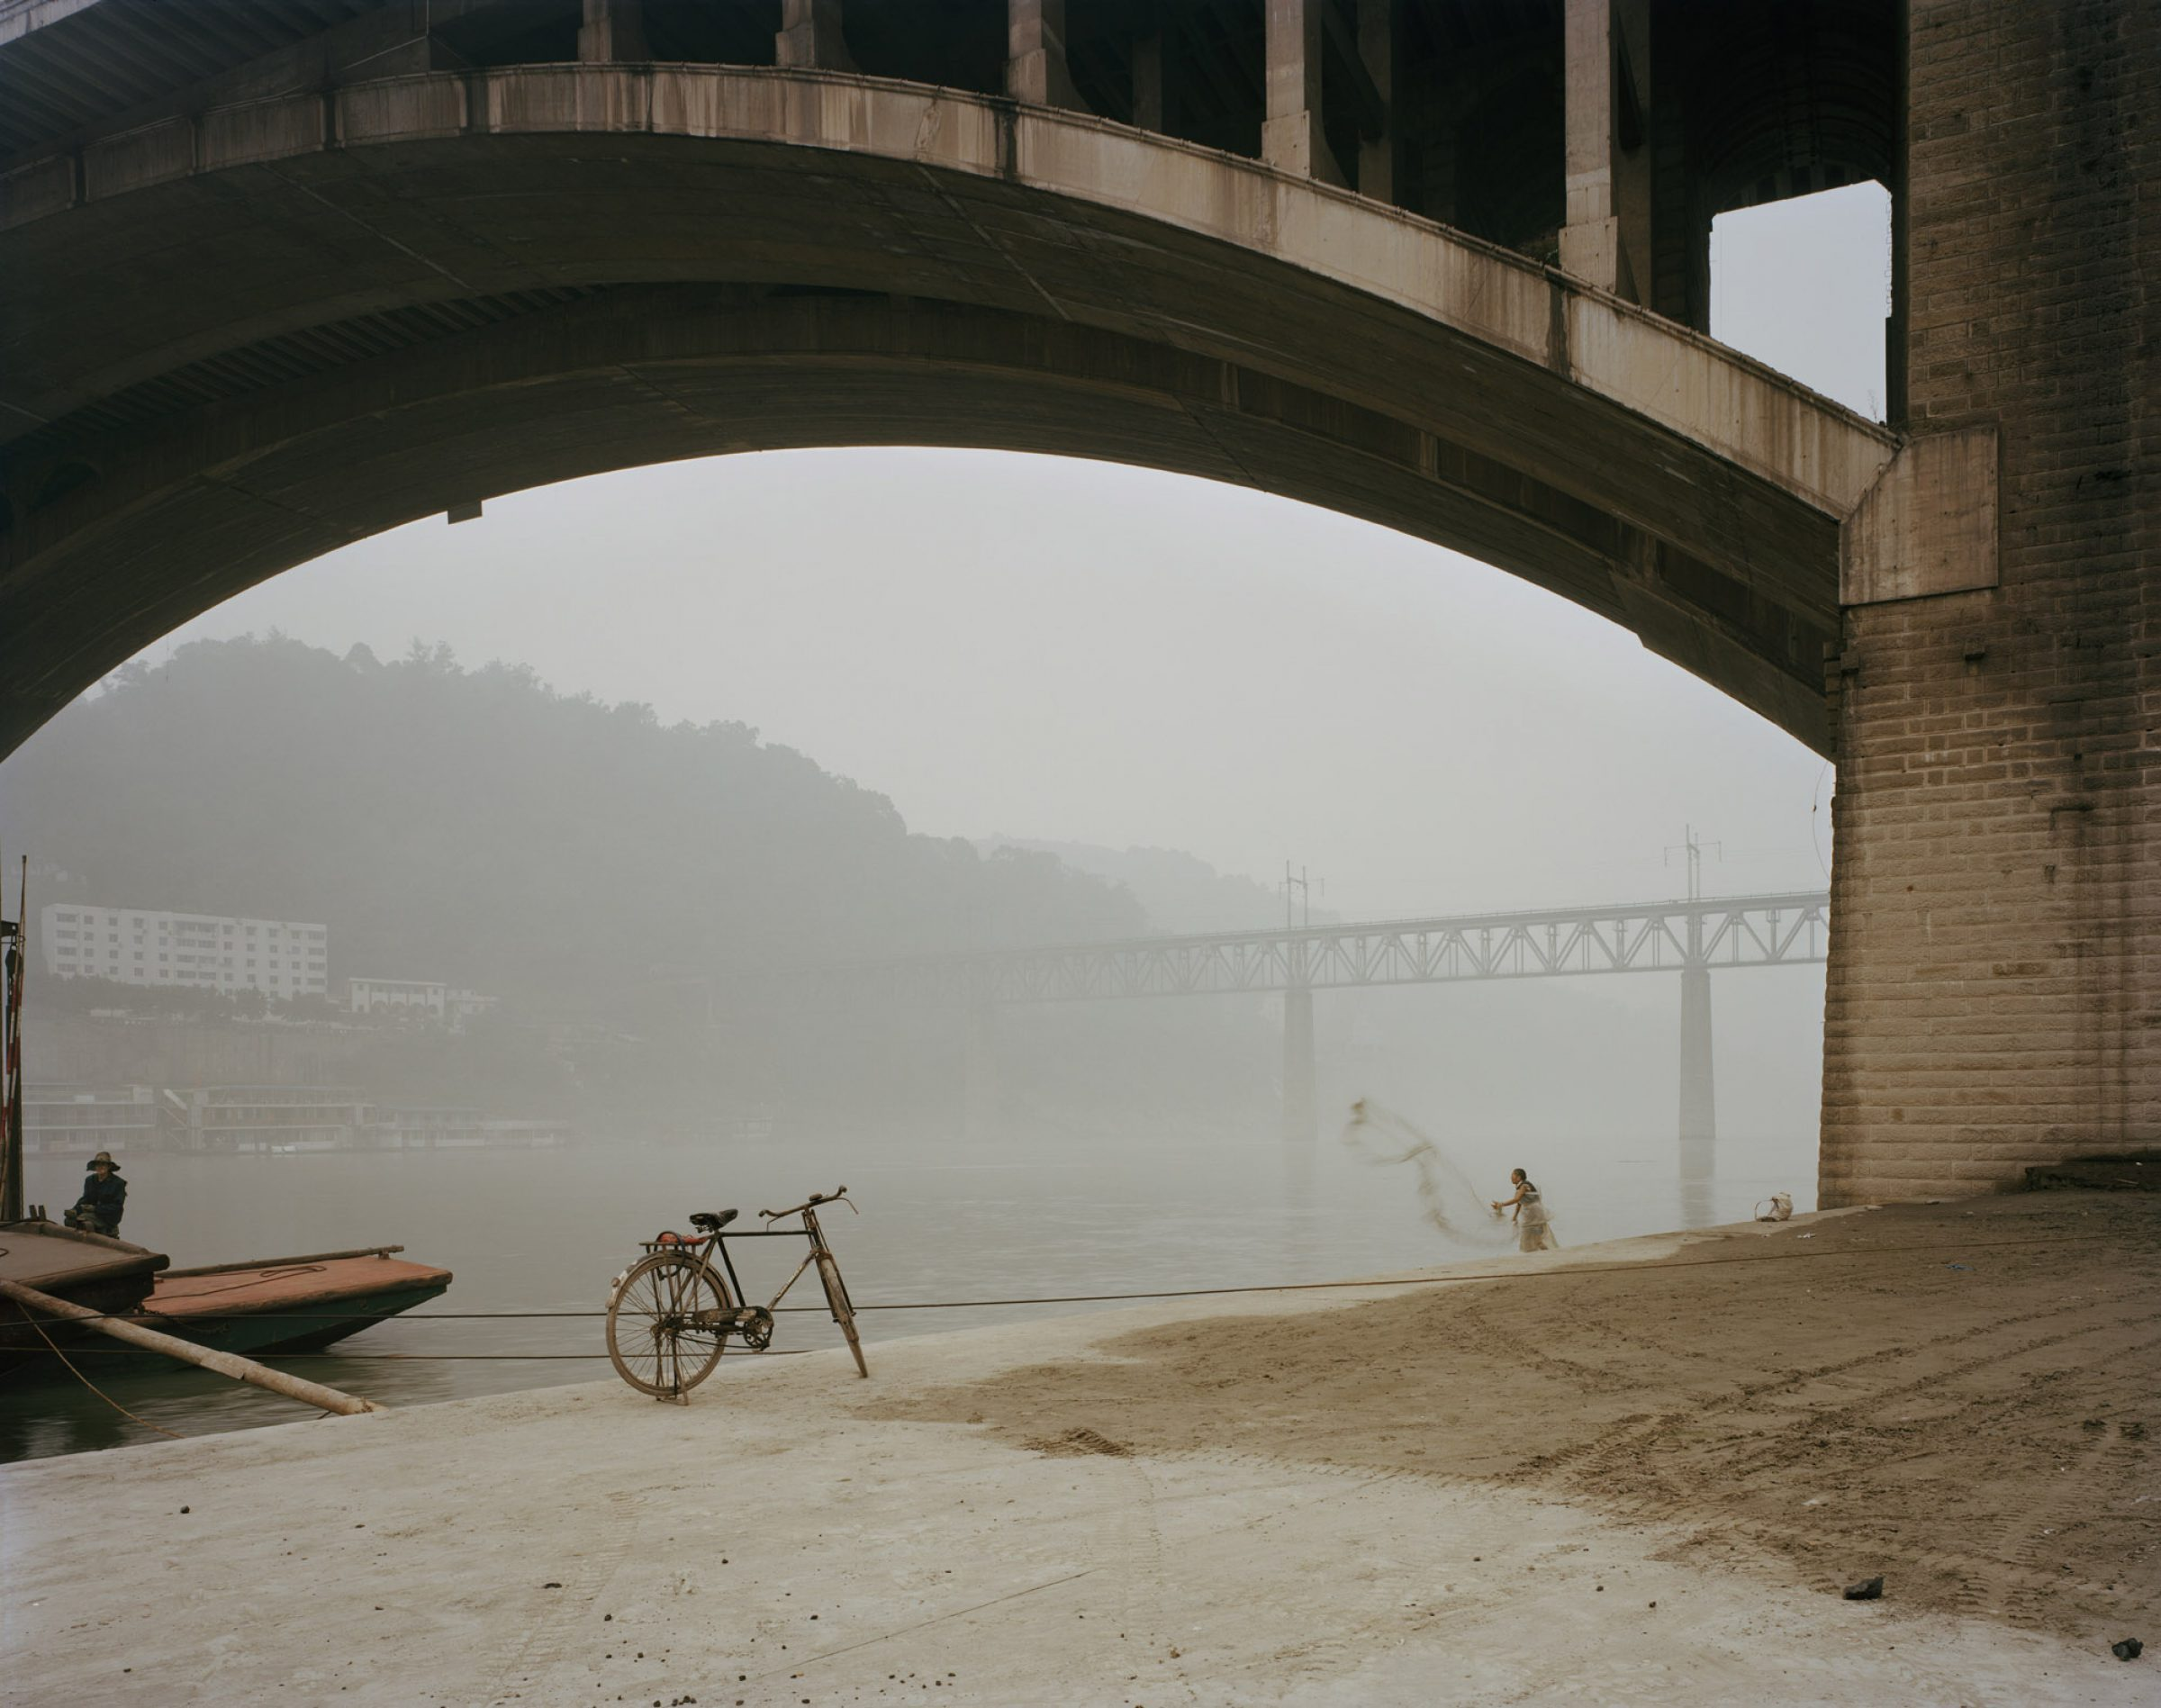 Yangtze, The Long River